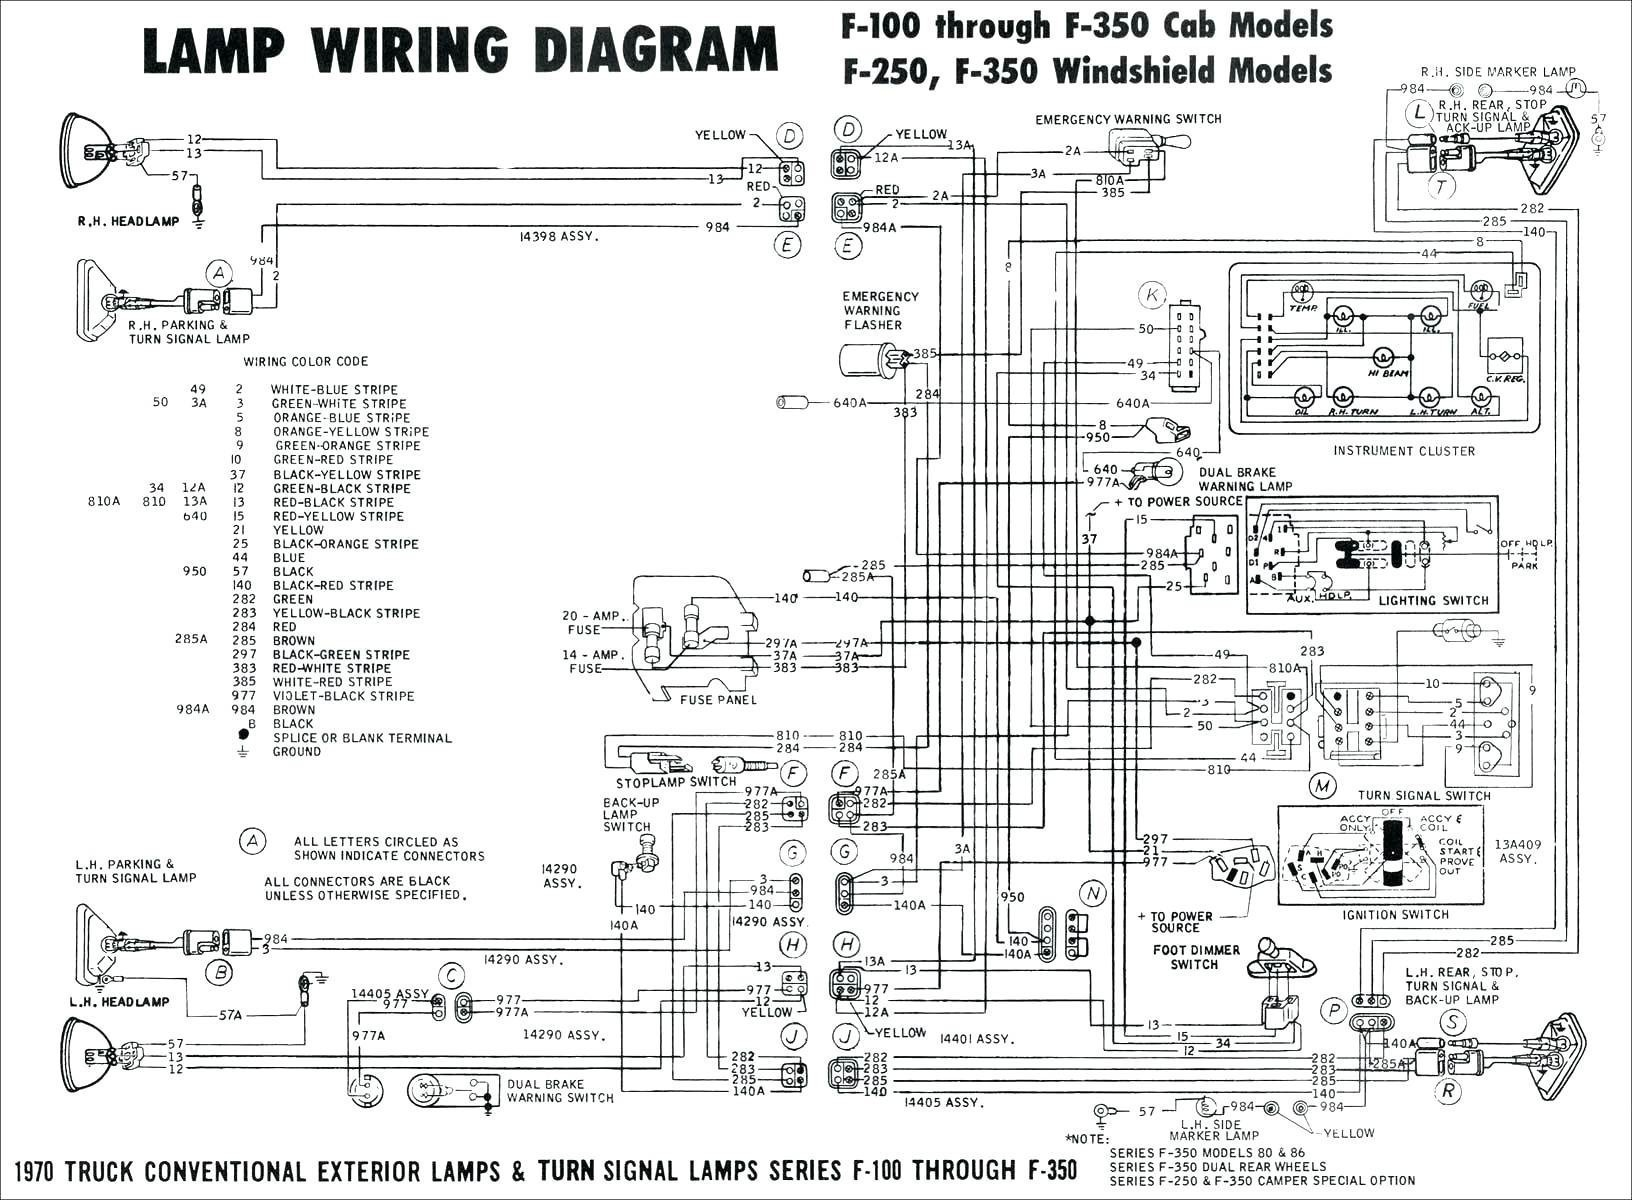 2002 Southwind 3 6r Coach Wiring Diagram | Wiring Schematic ... on